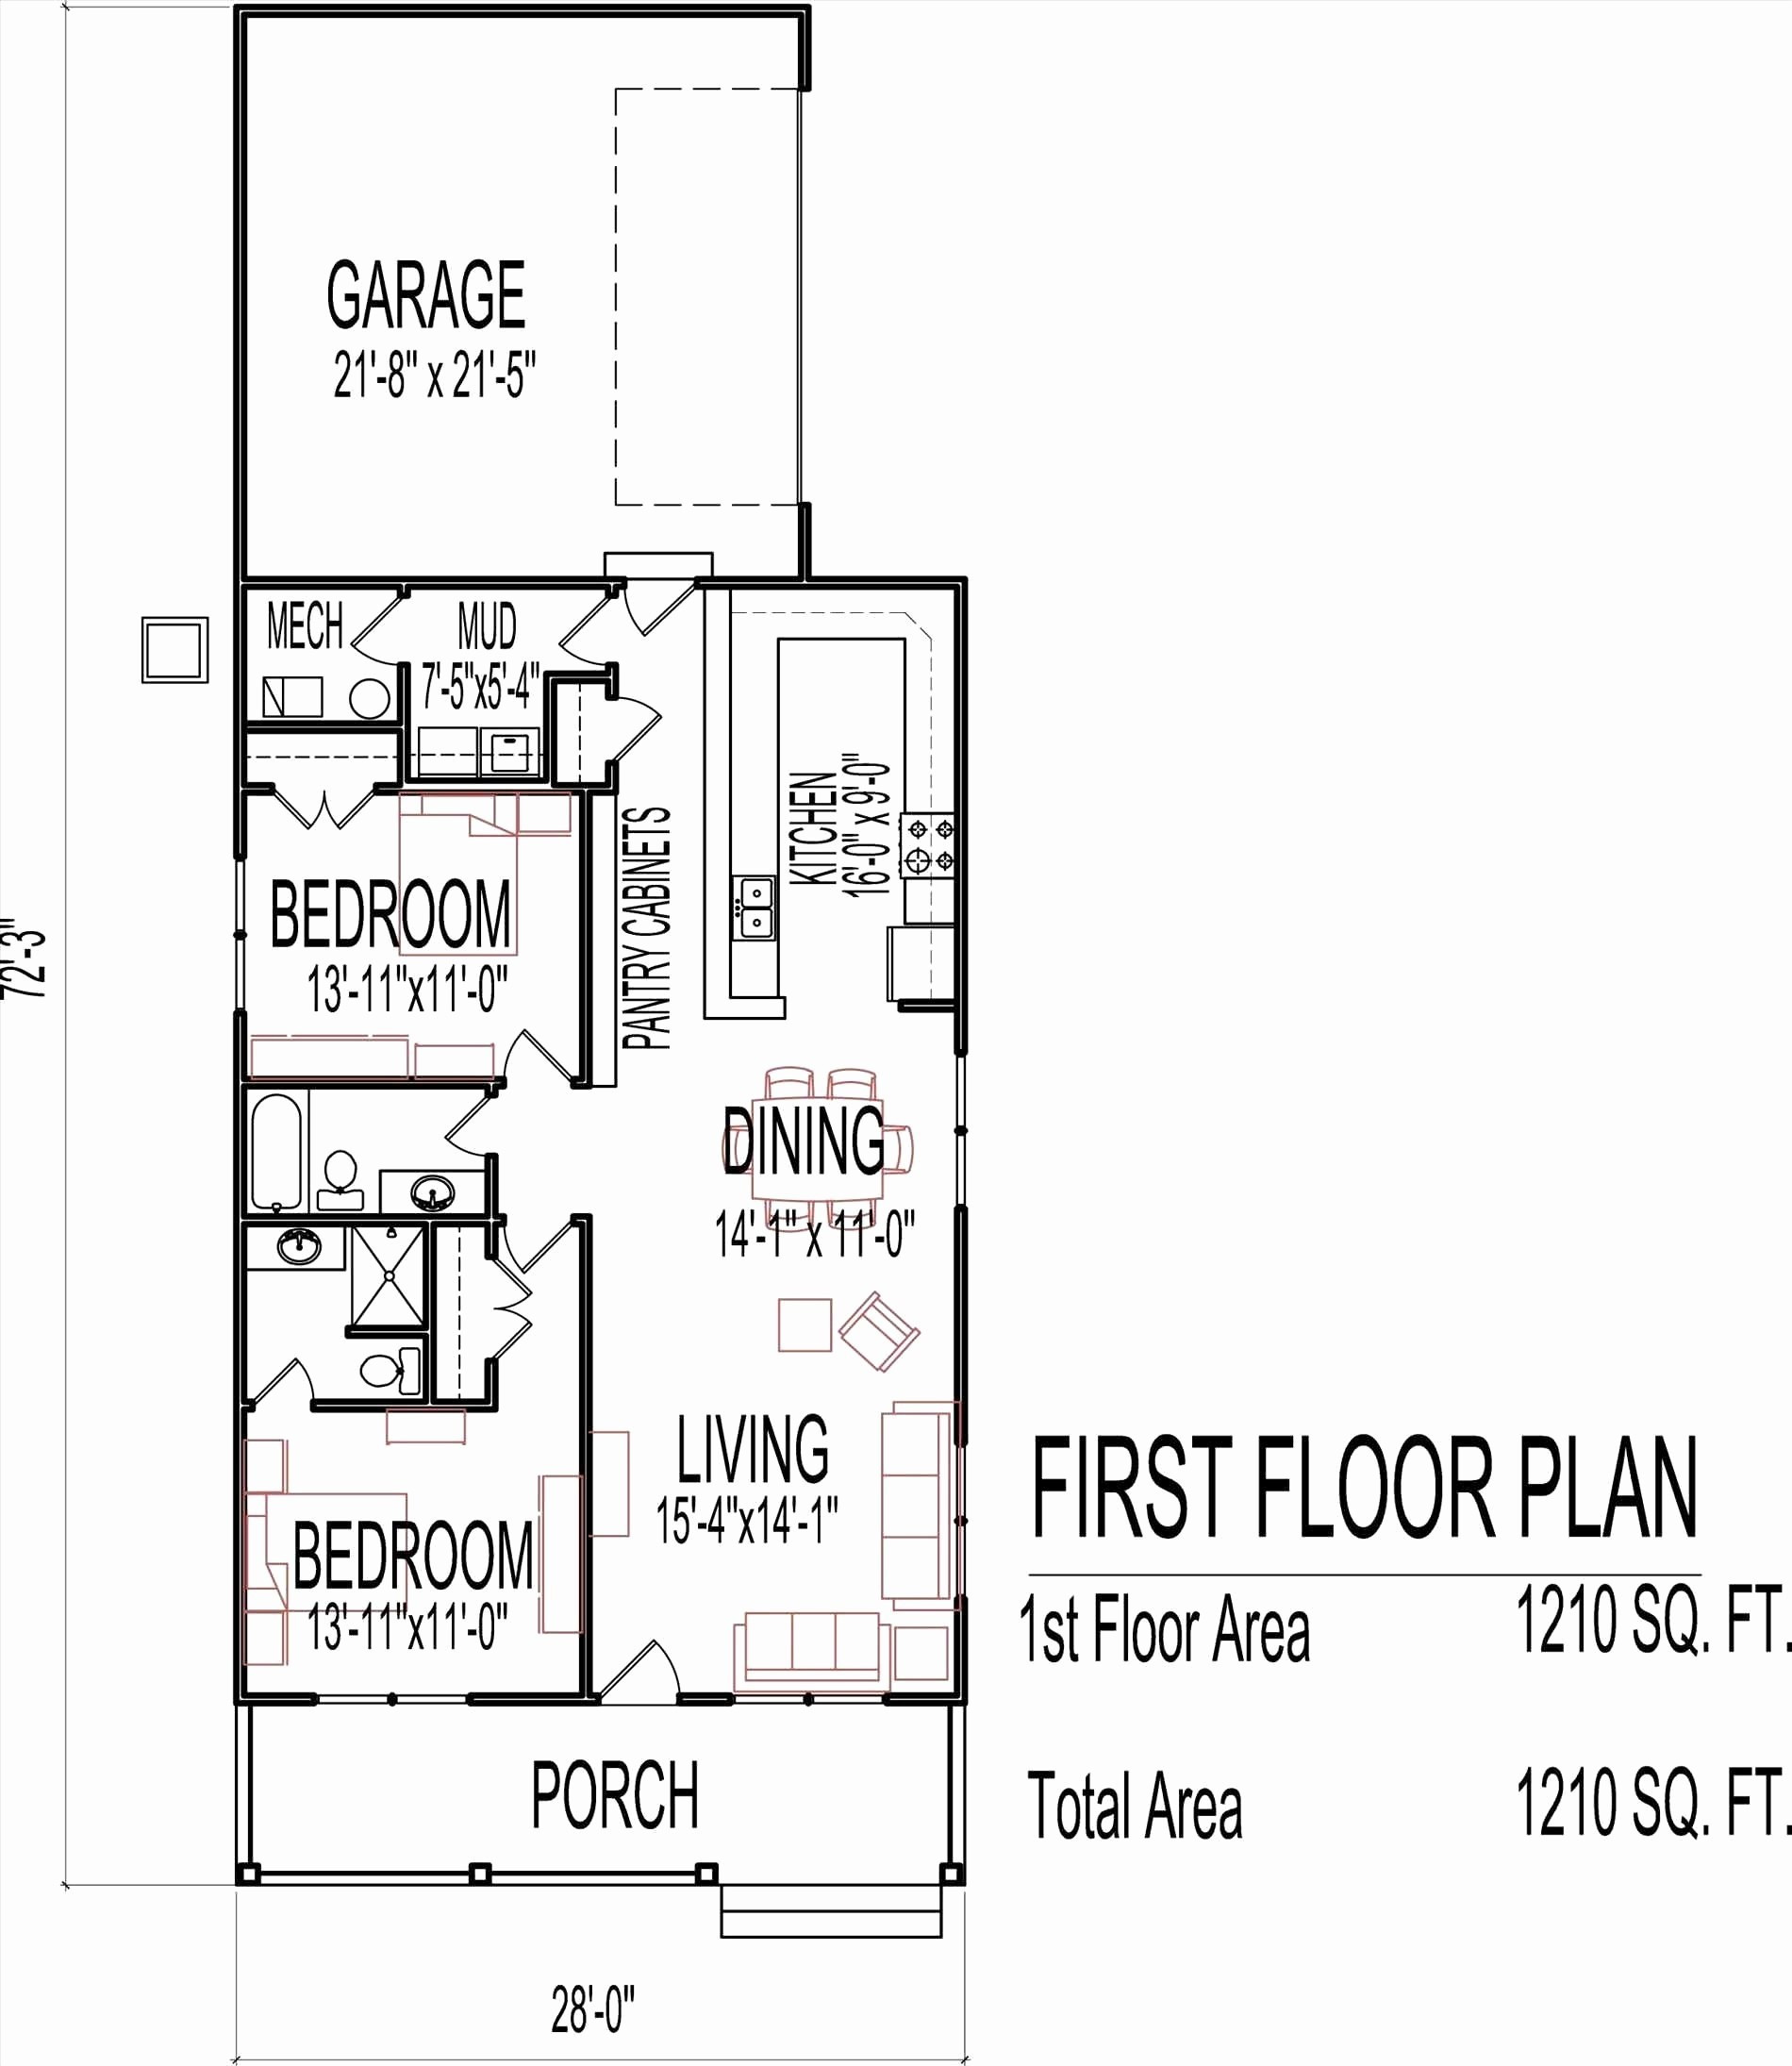 hardwood floor stapler of home floor plans with basements luxury 2 story house plans with in home floor plans with basements lovely house plan program lovely free floor plans unique design plan